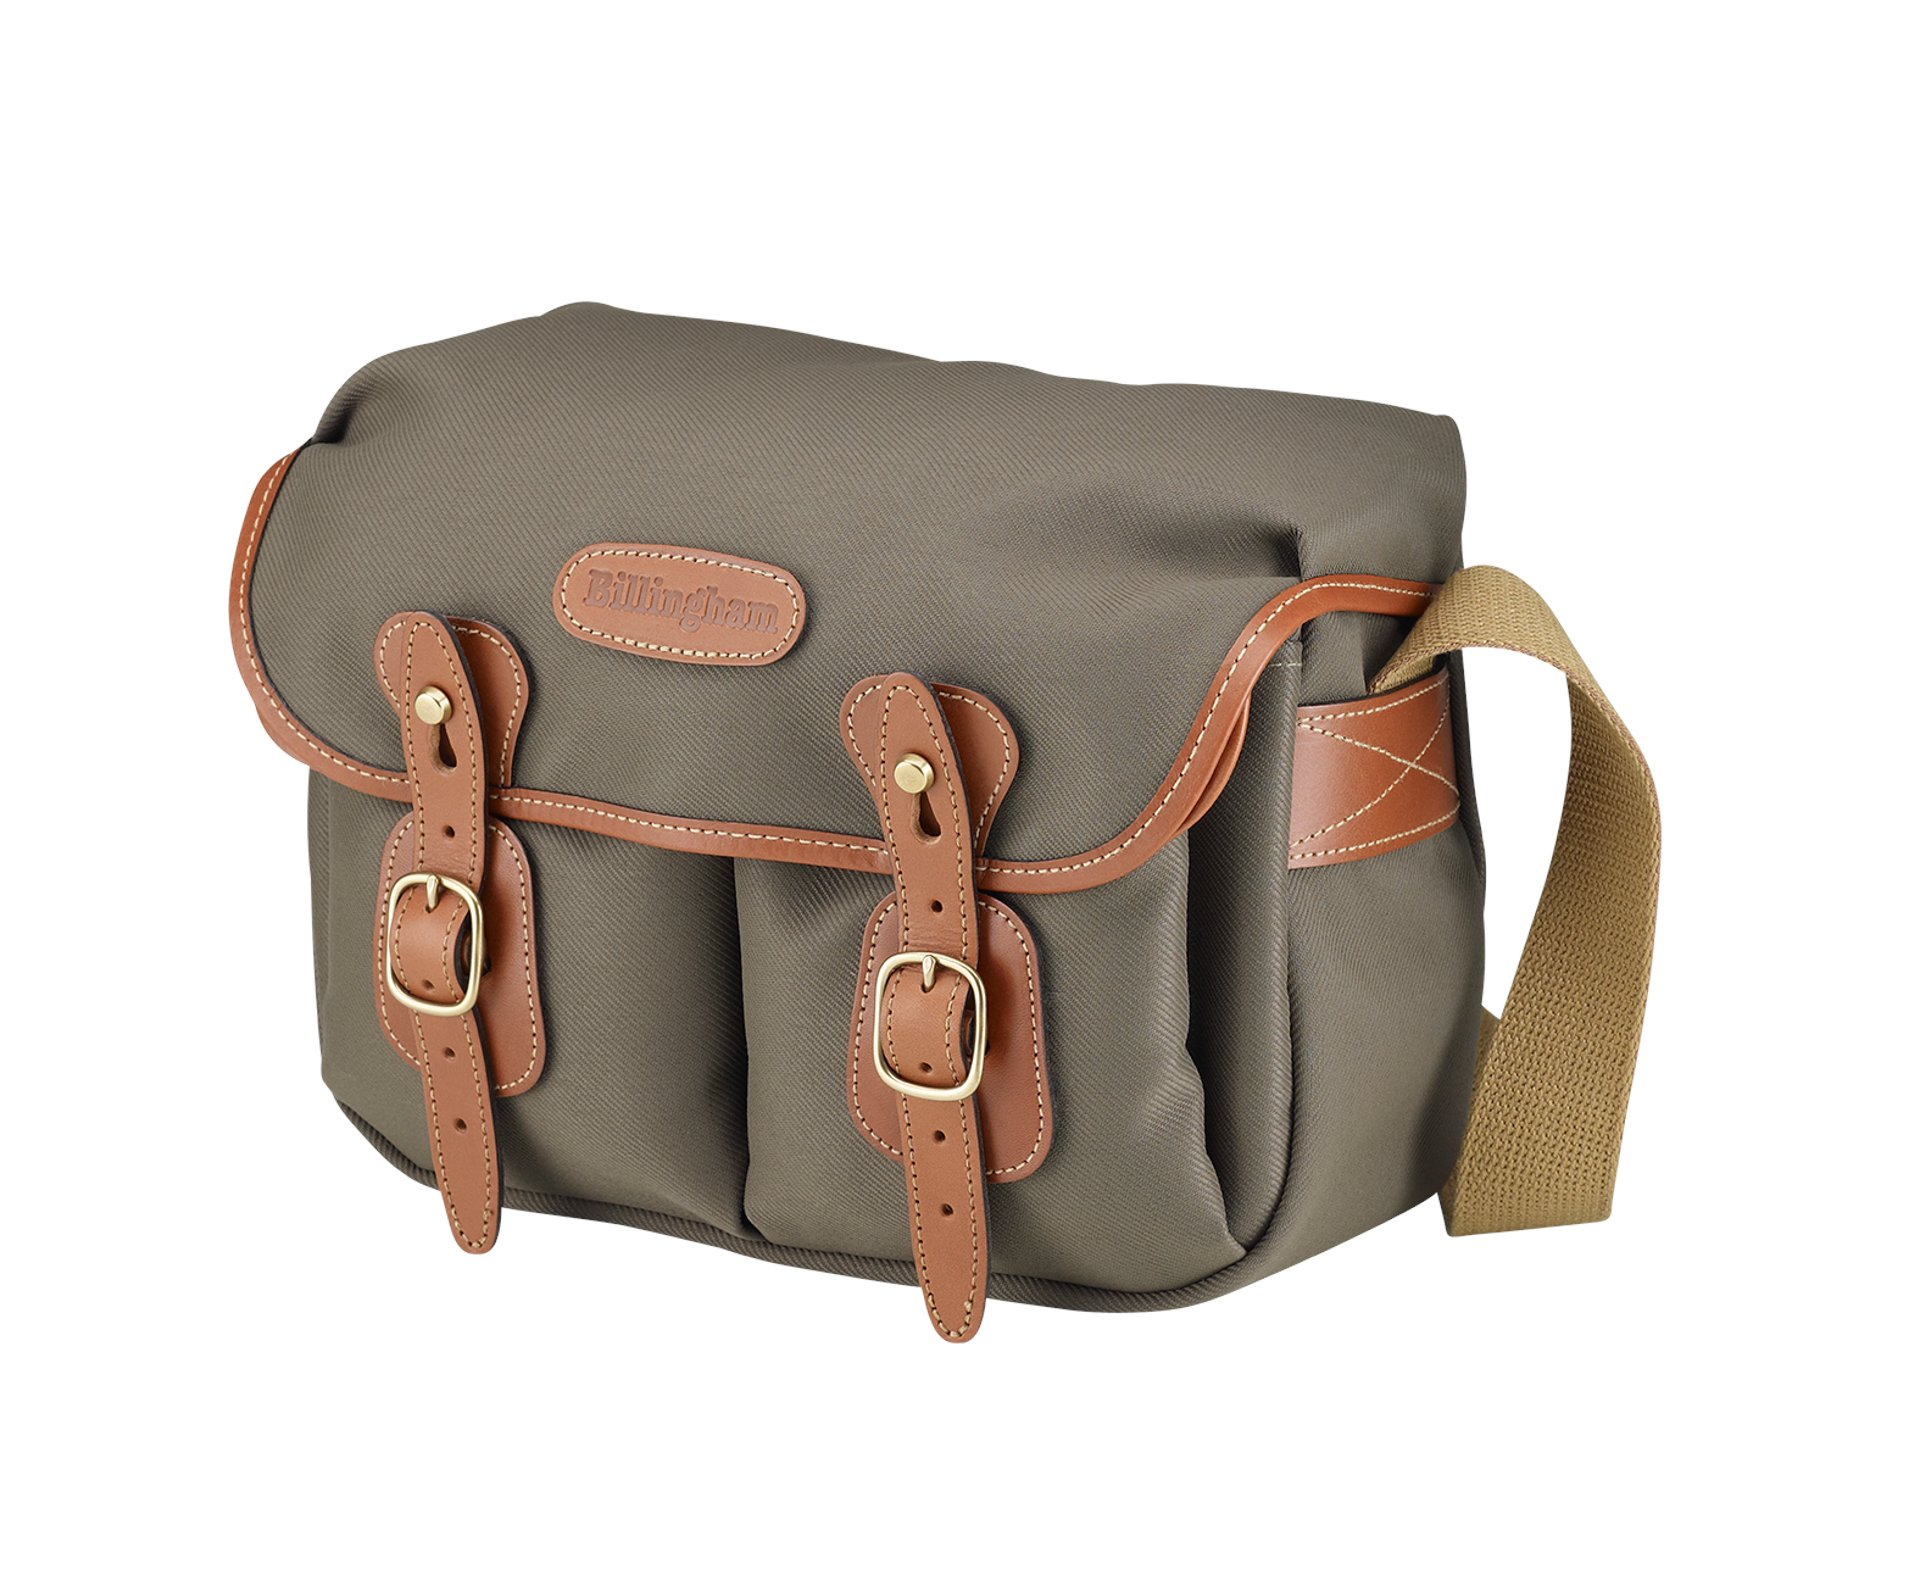 Billingham Hadley Small, Camera or Document Shoulder Bag, Sage Canvas with Tan Leather Trim and Brass Fittings